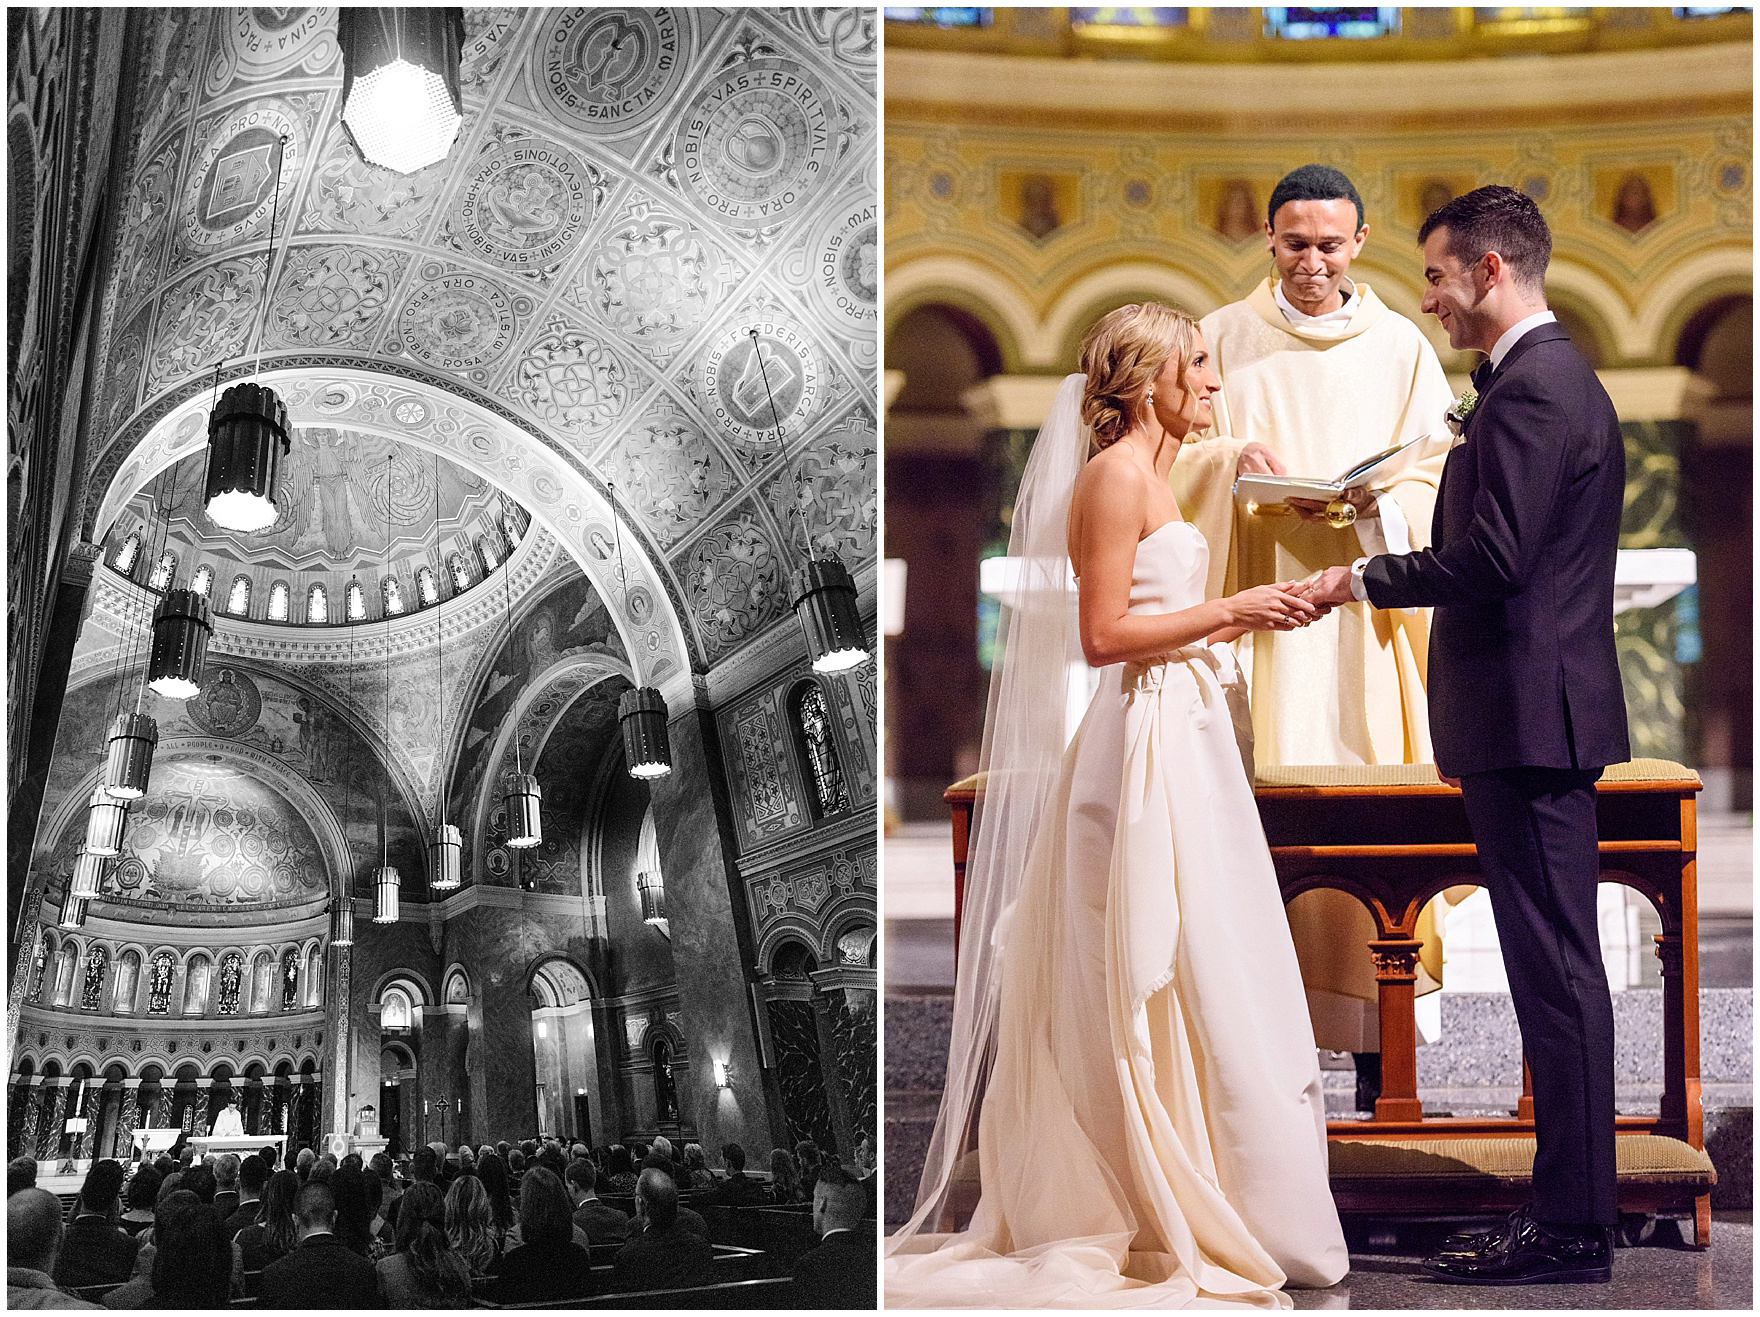 The bride places a ring on the groom's hand during a St. Clement Germania Place Chicago wedding.